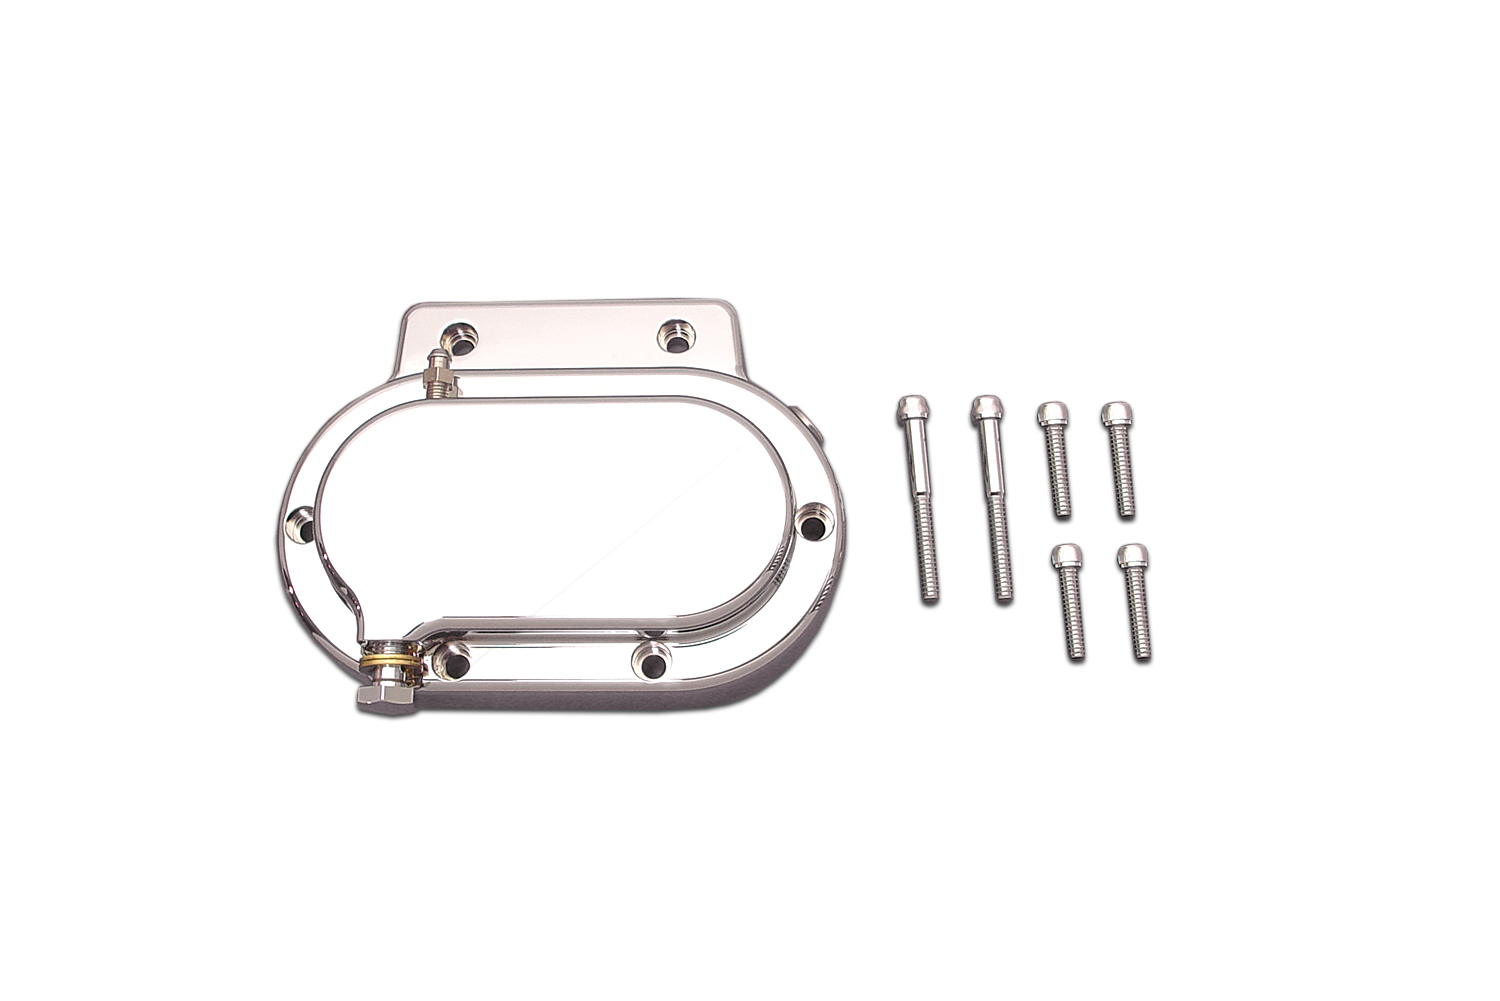 Hydraulic Side Cover,for Harley Davidson motorcycles,by V-Twin